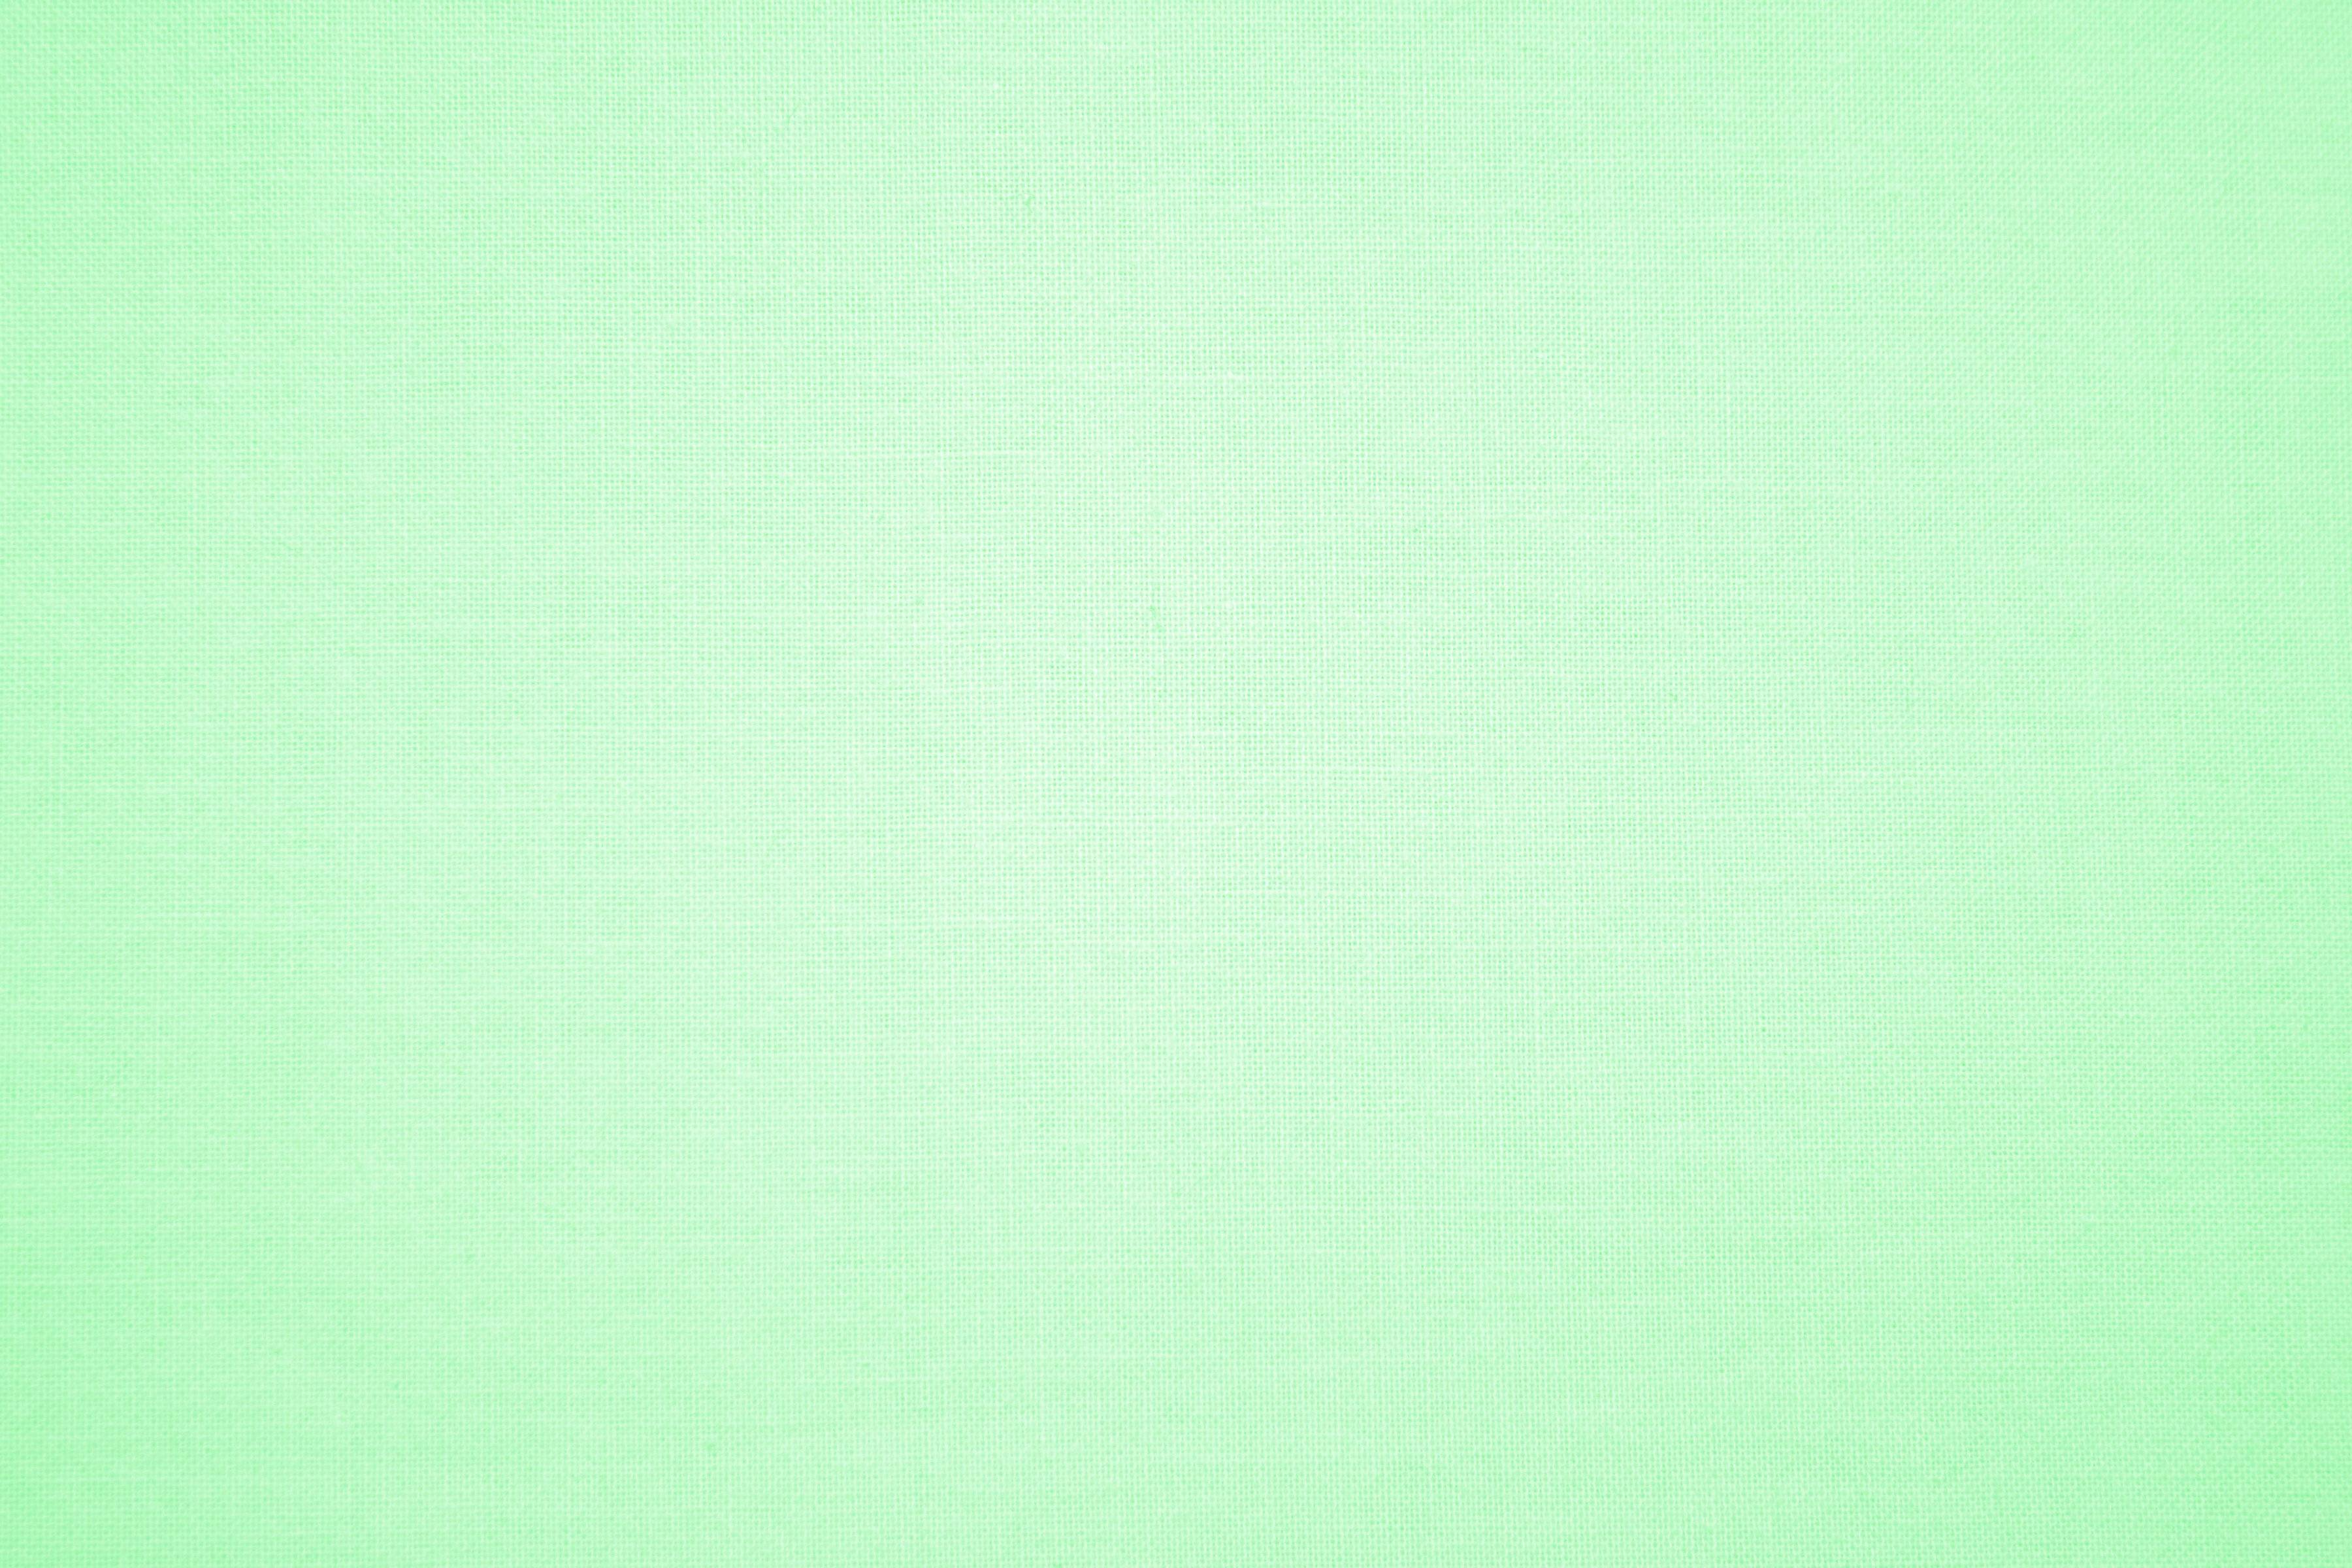 Pastel Green Wallpapers Top Free Pastel Green Backgrounds